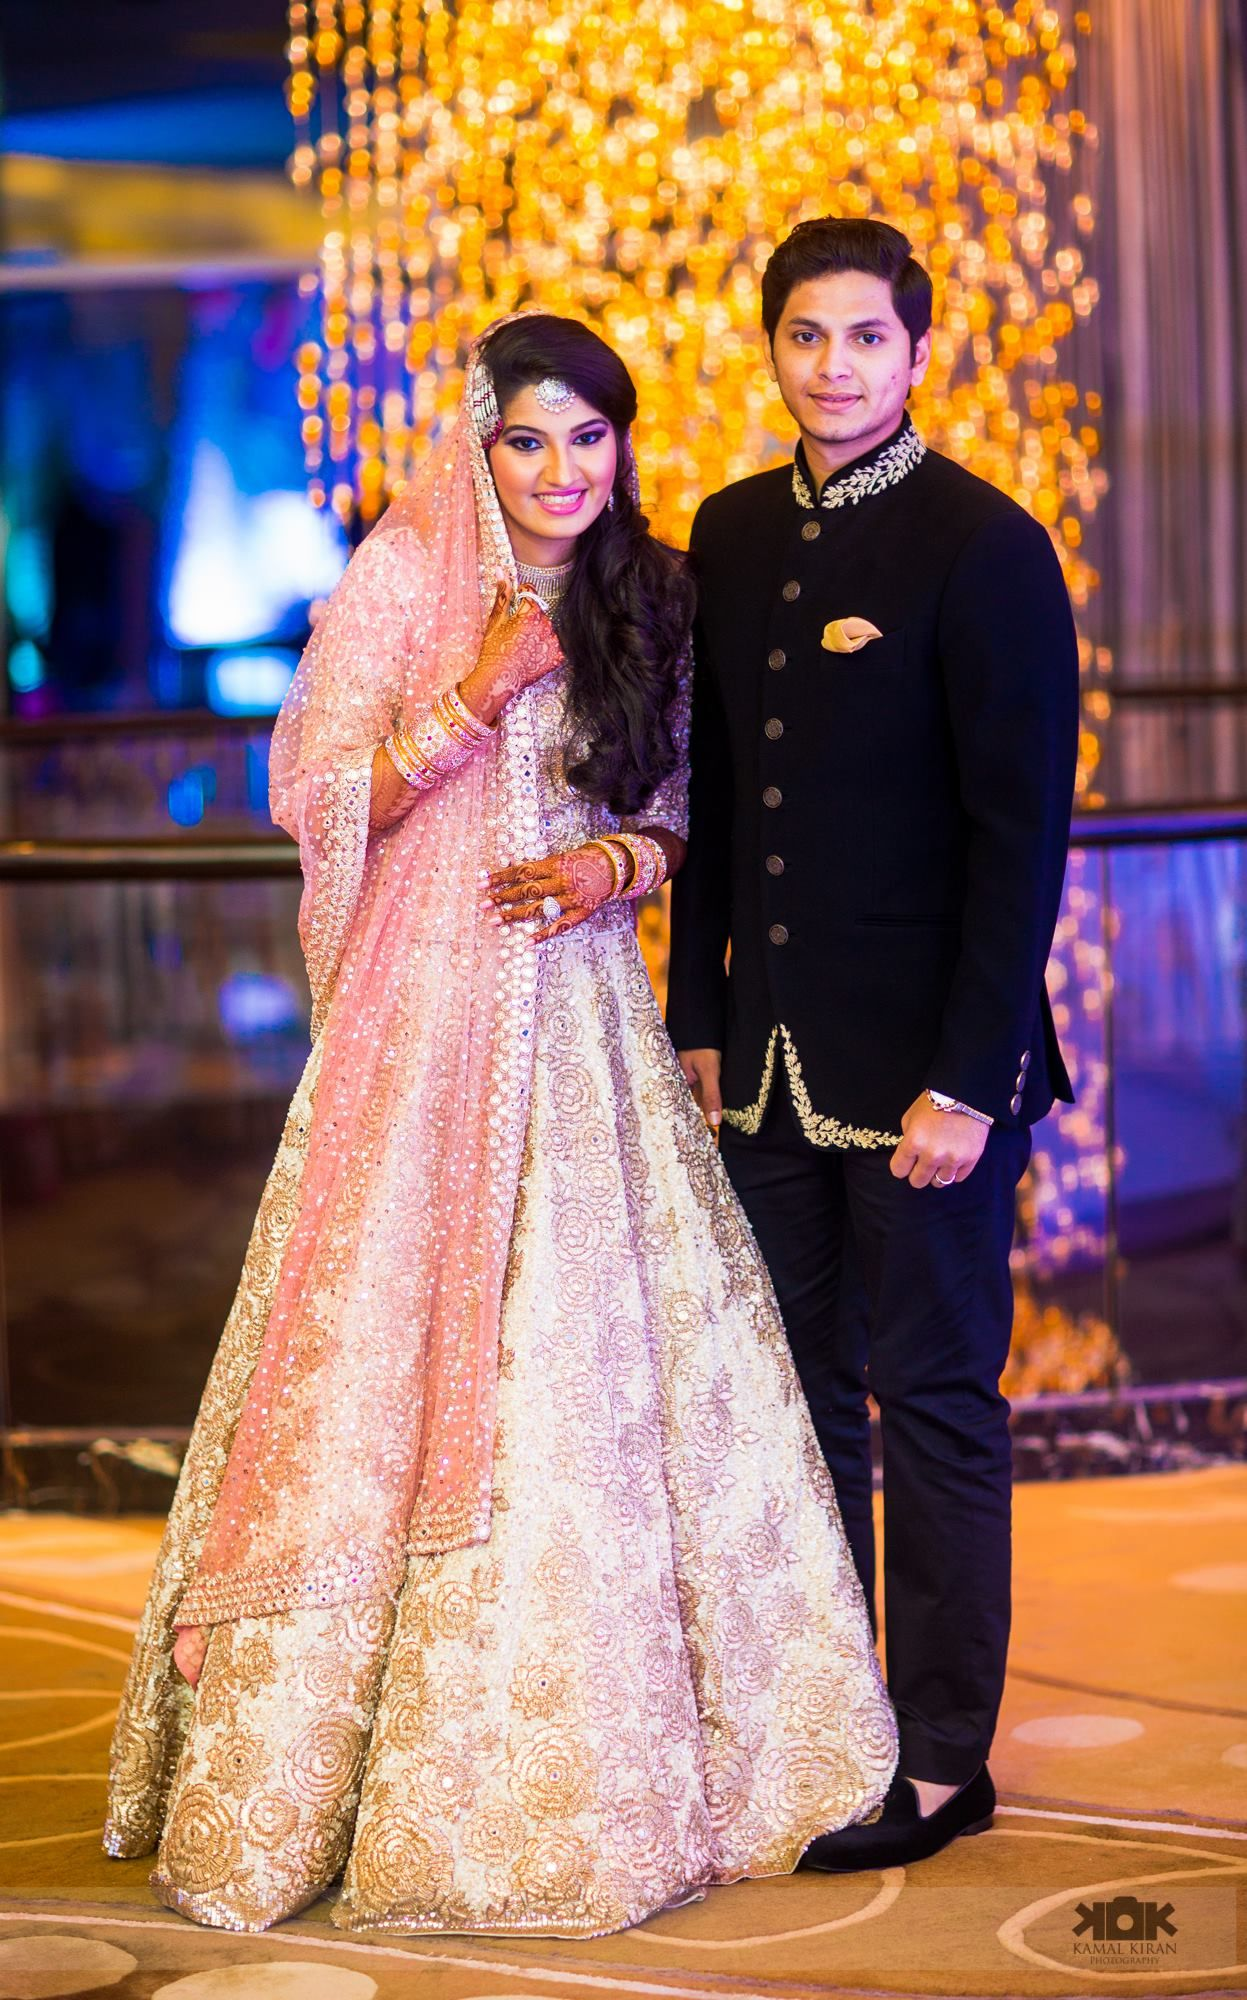 Sania Mirza Sisters Wedding The Much Loved Tennis Star Who Won